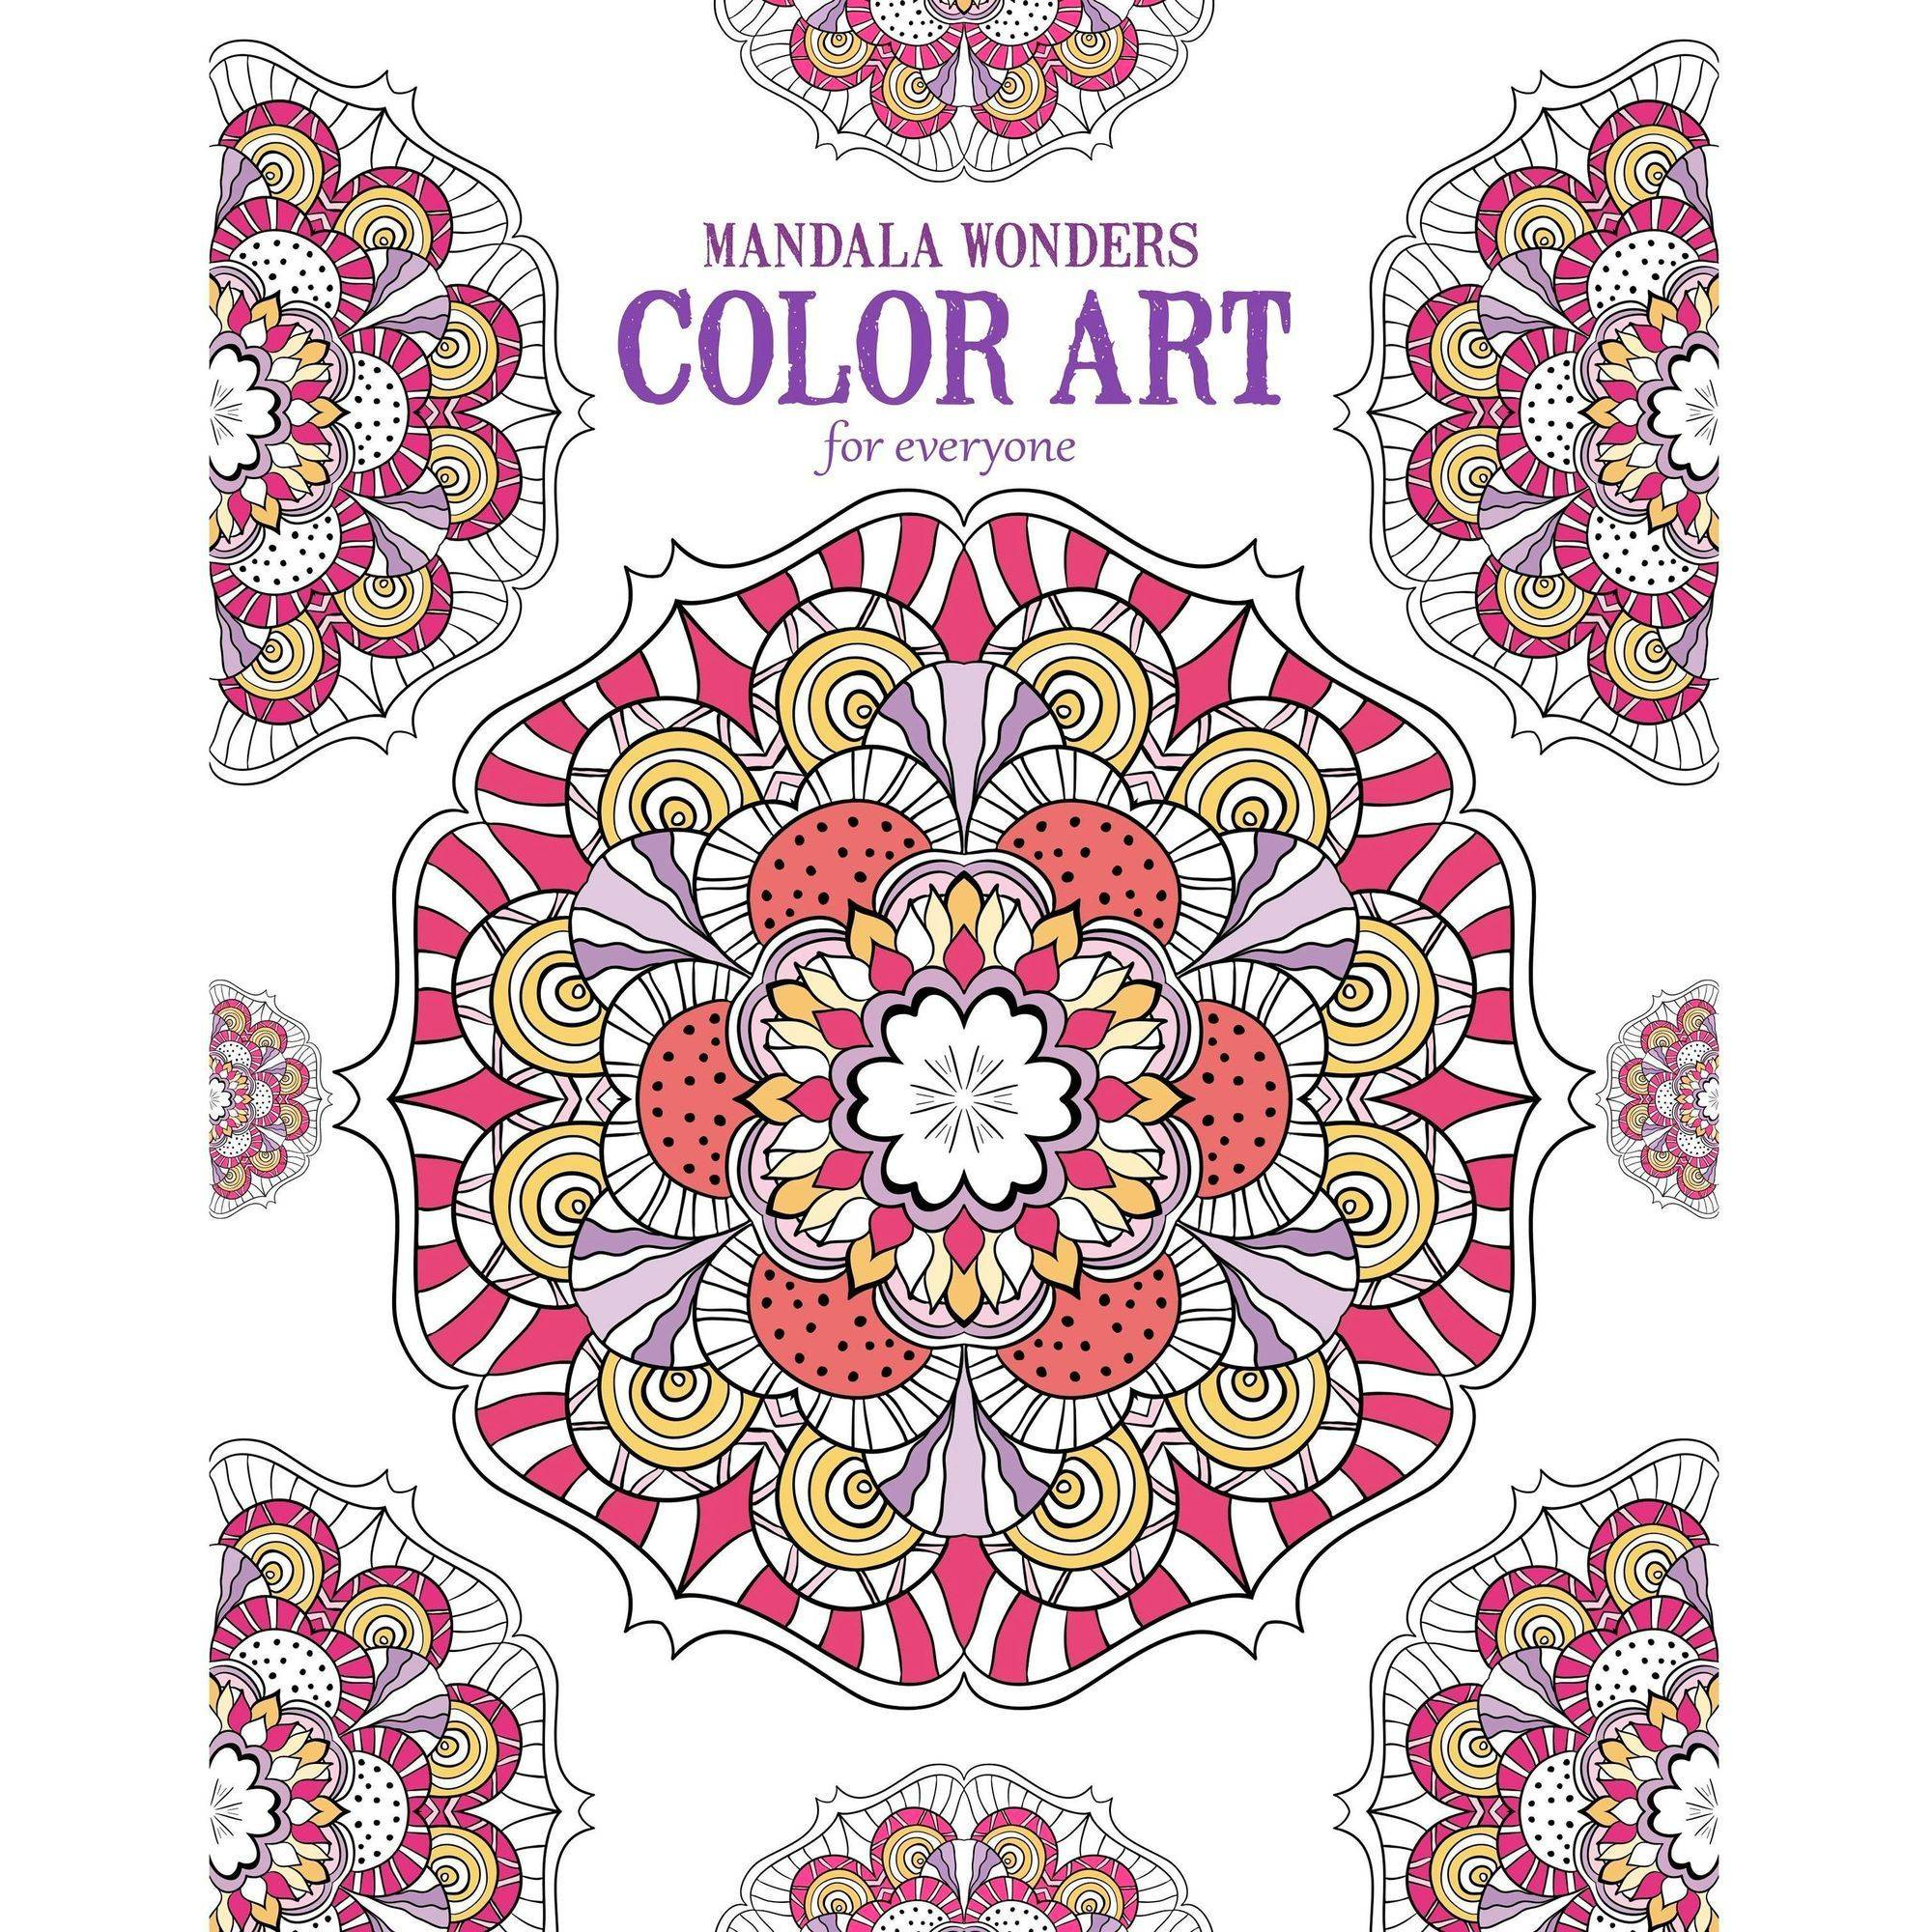 Mandala Wonders Color Art For Everyone by Generic